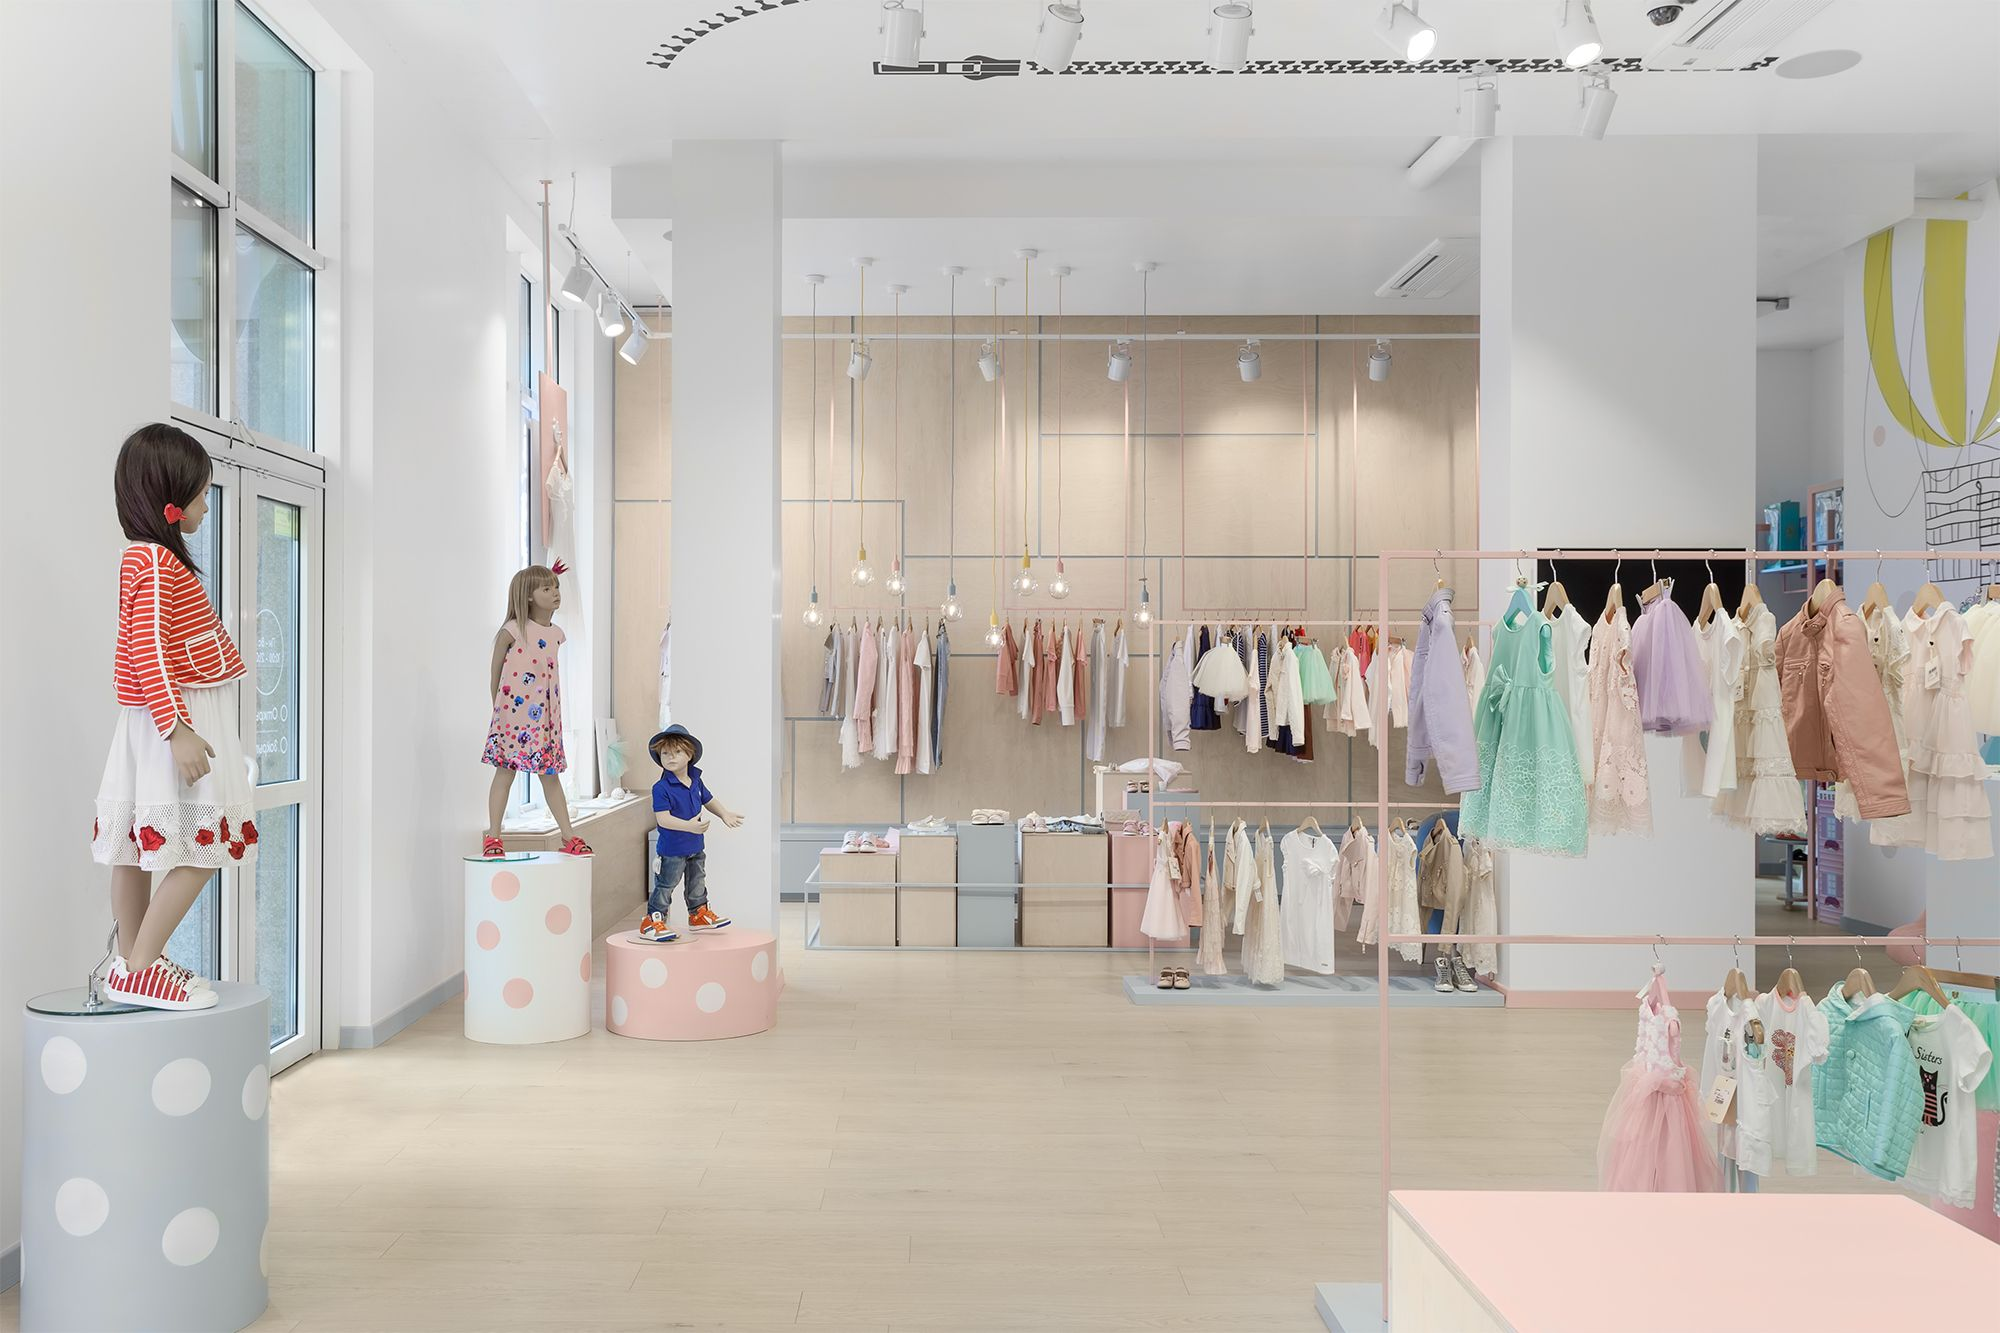 Childrens clothing shop in Kyiv Ukraine designed by Lena Petrescu